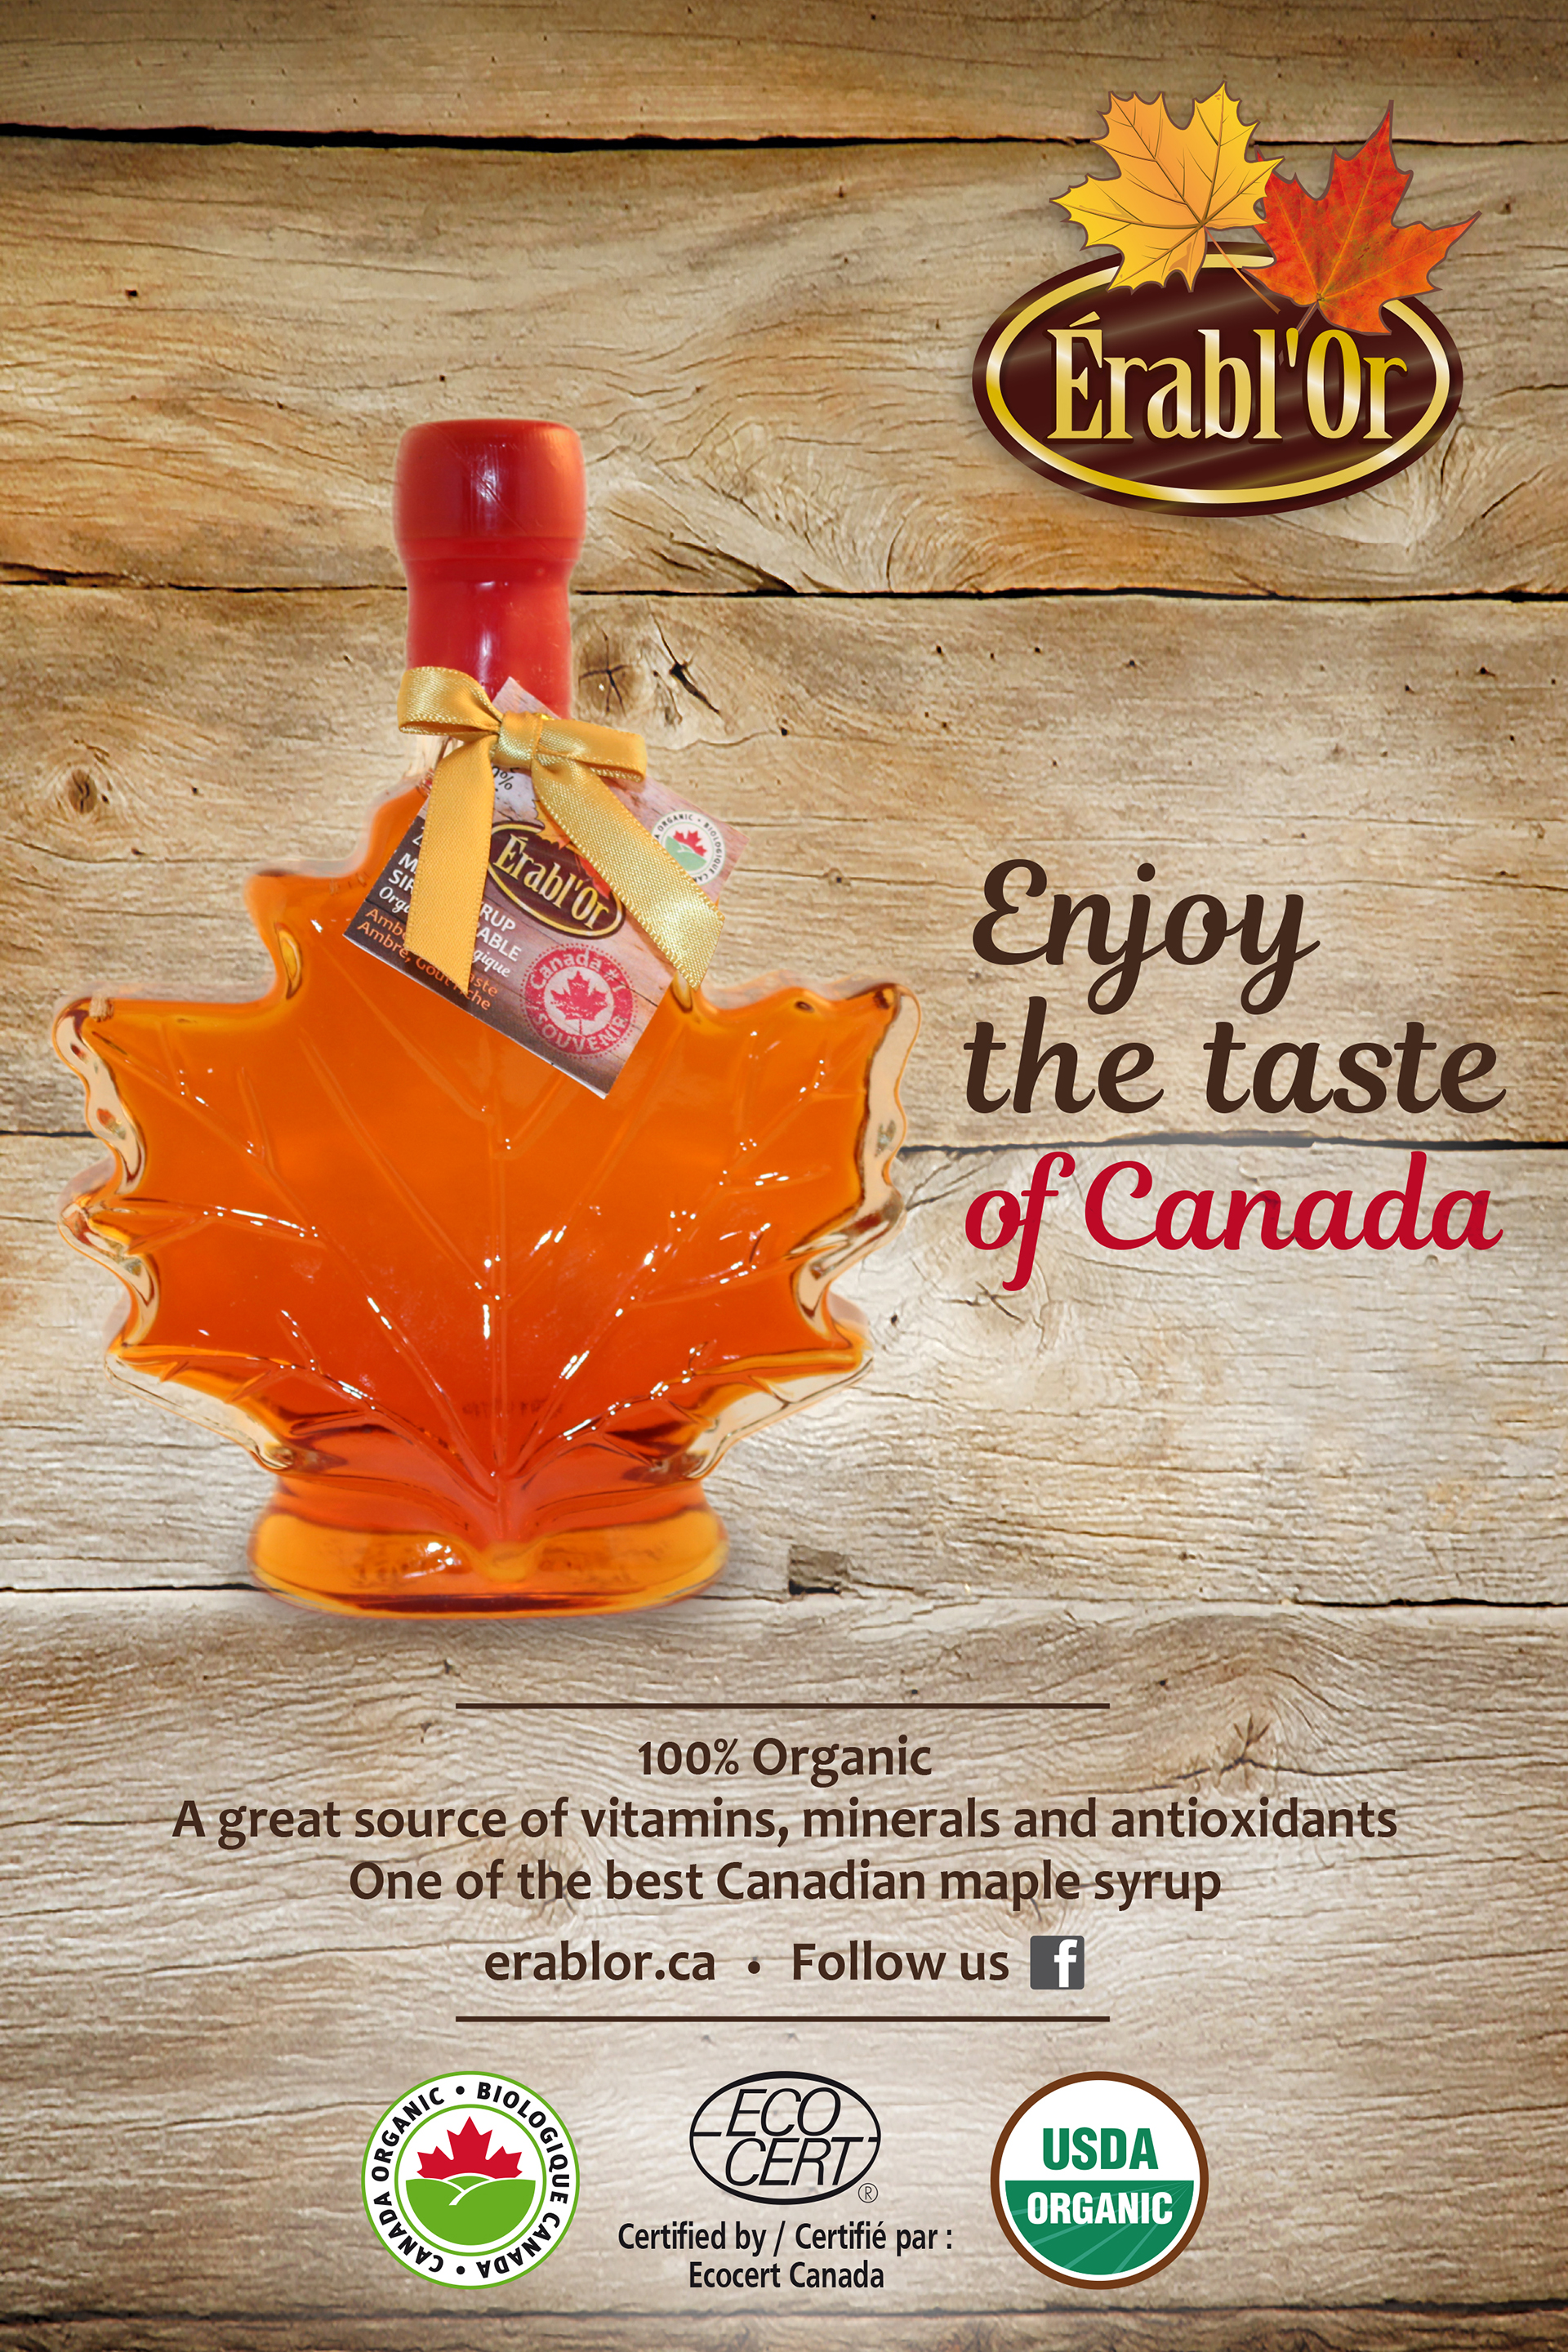 Enjoy the taditional taste of Canada